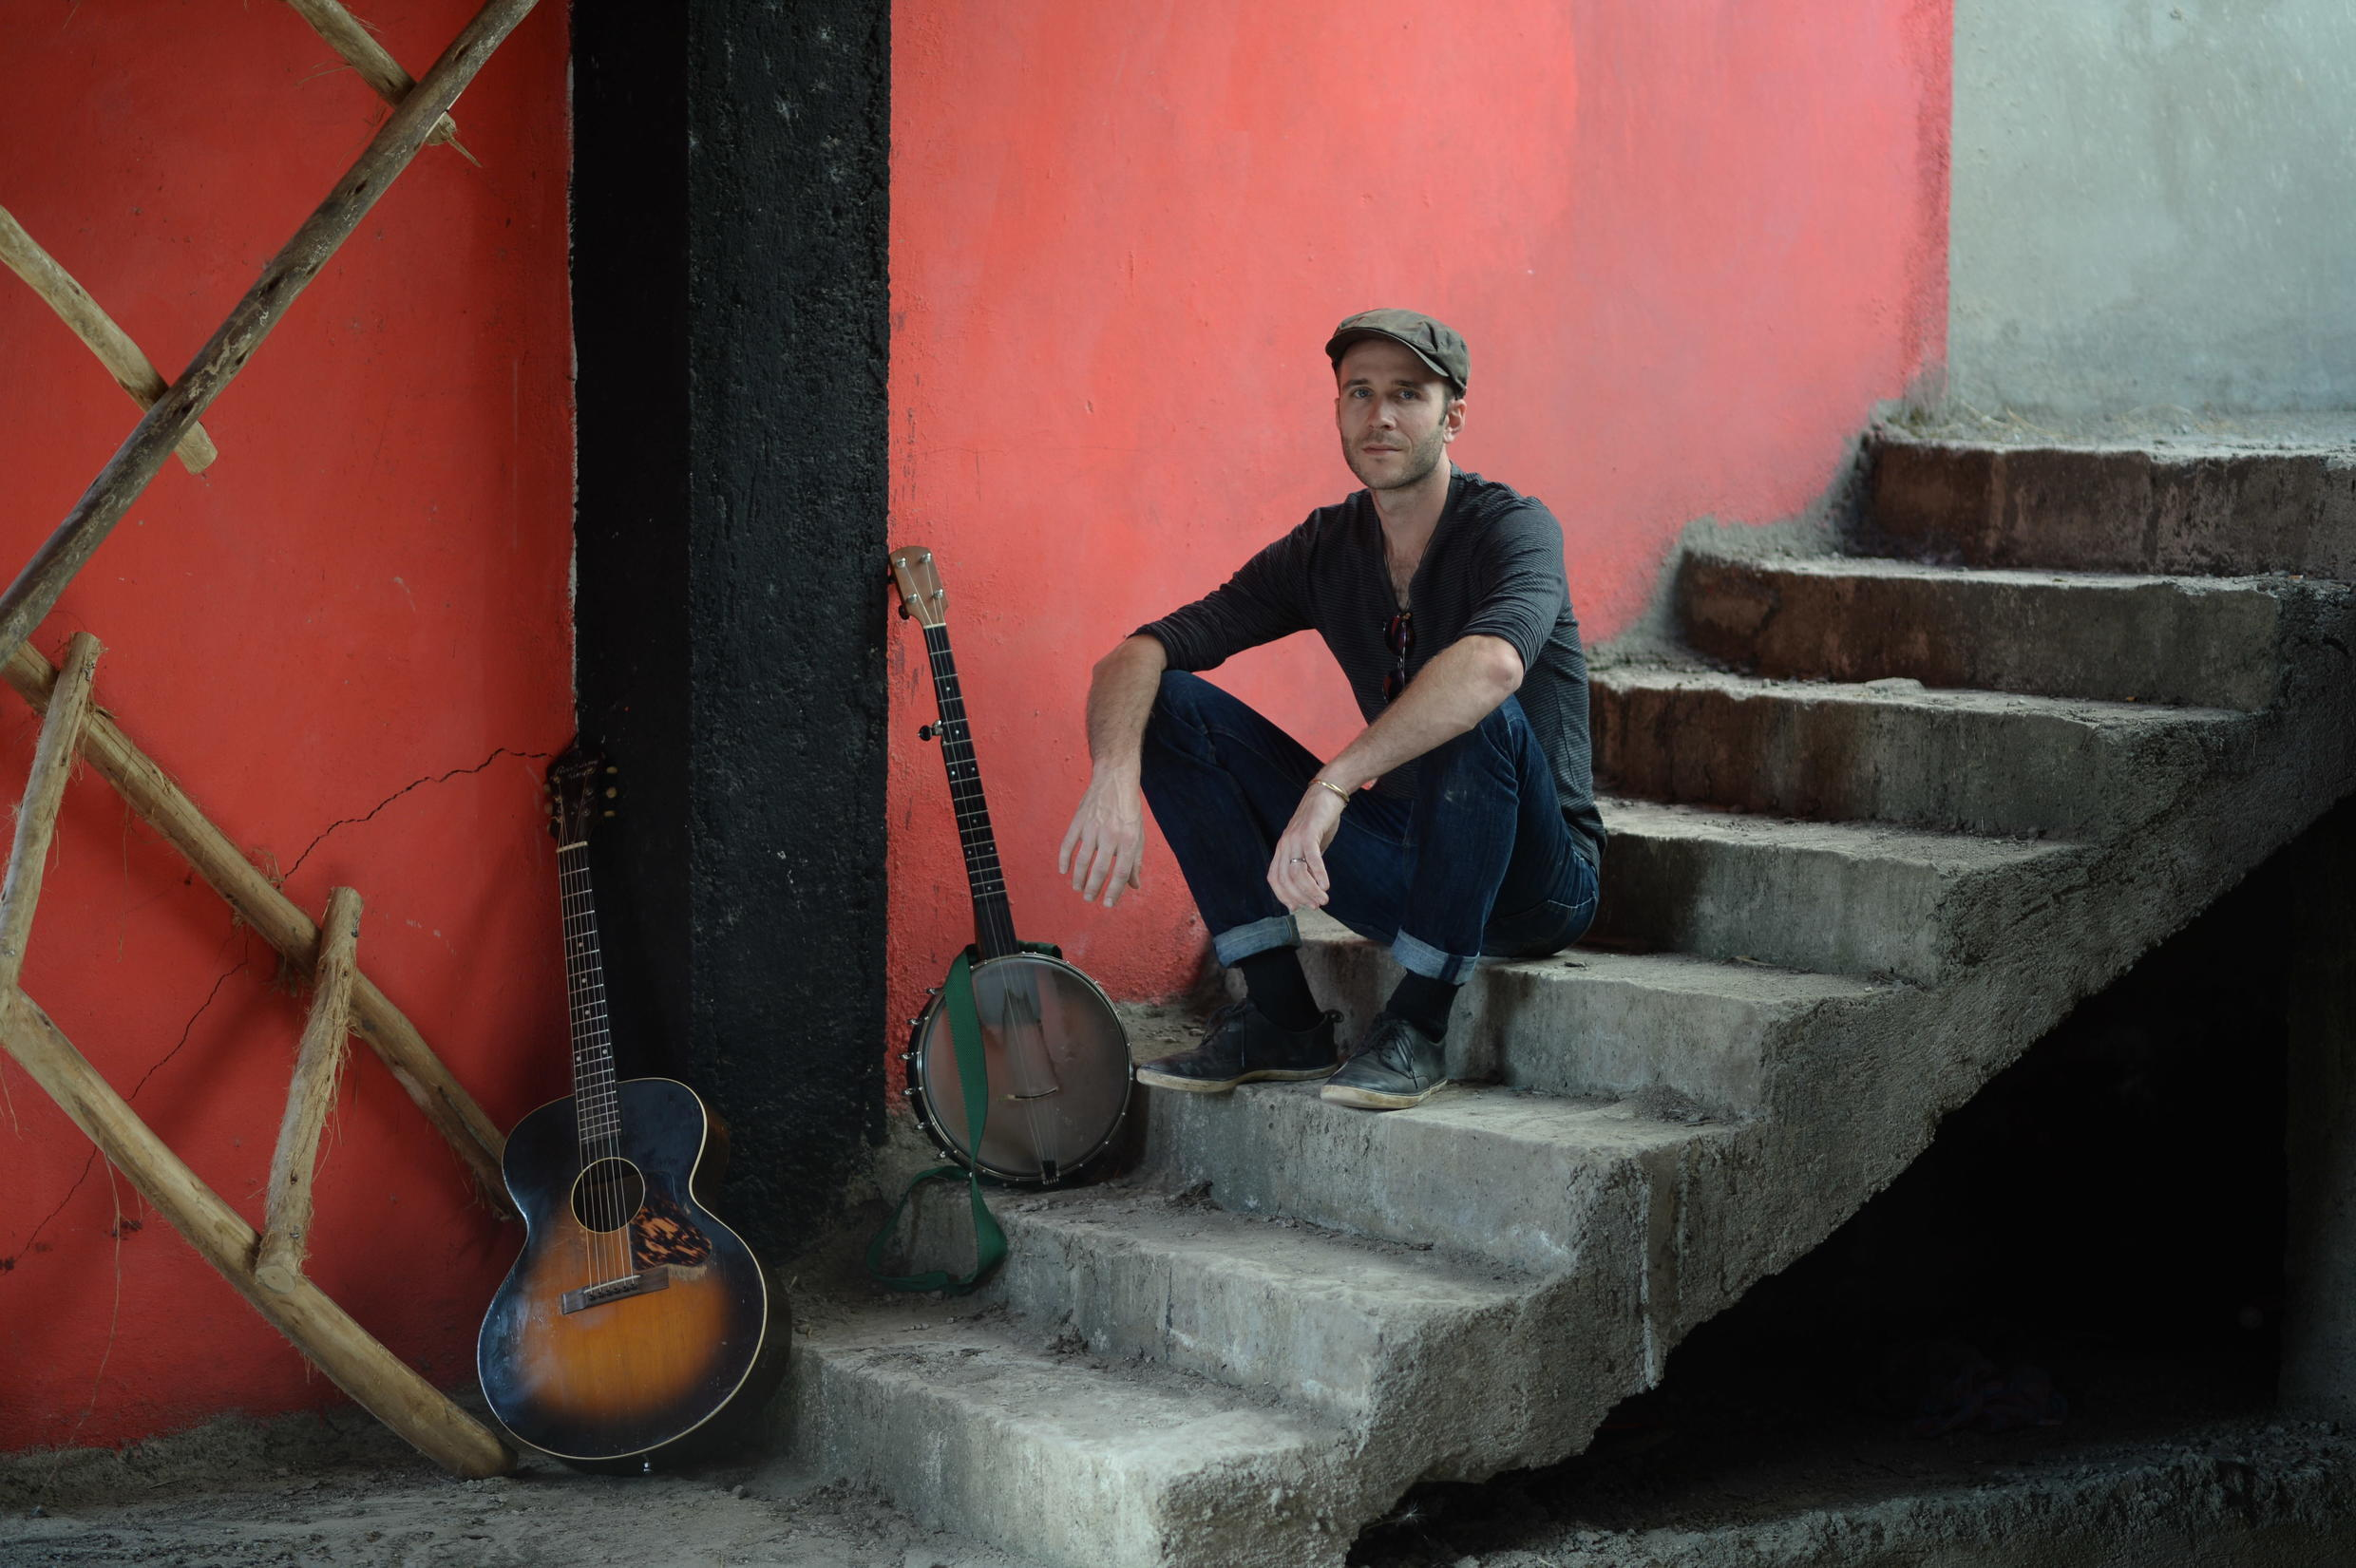 Musician Cory Seznec in Addis Ababa, an inspiration for his latest album Backroad Carnival